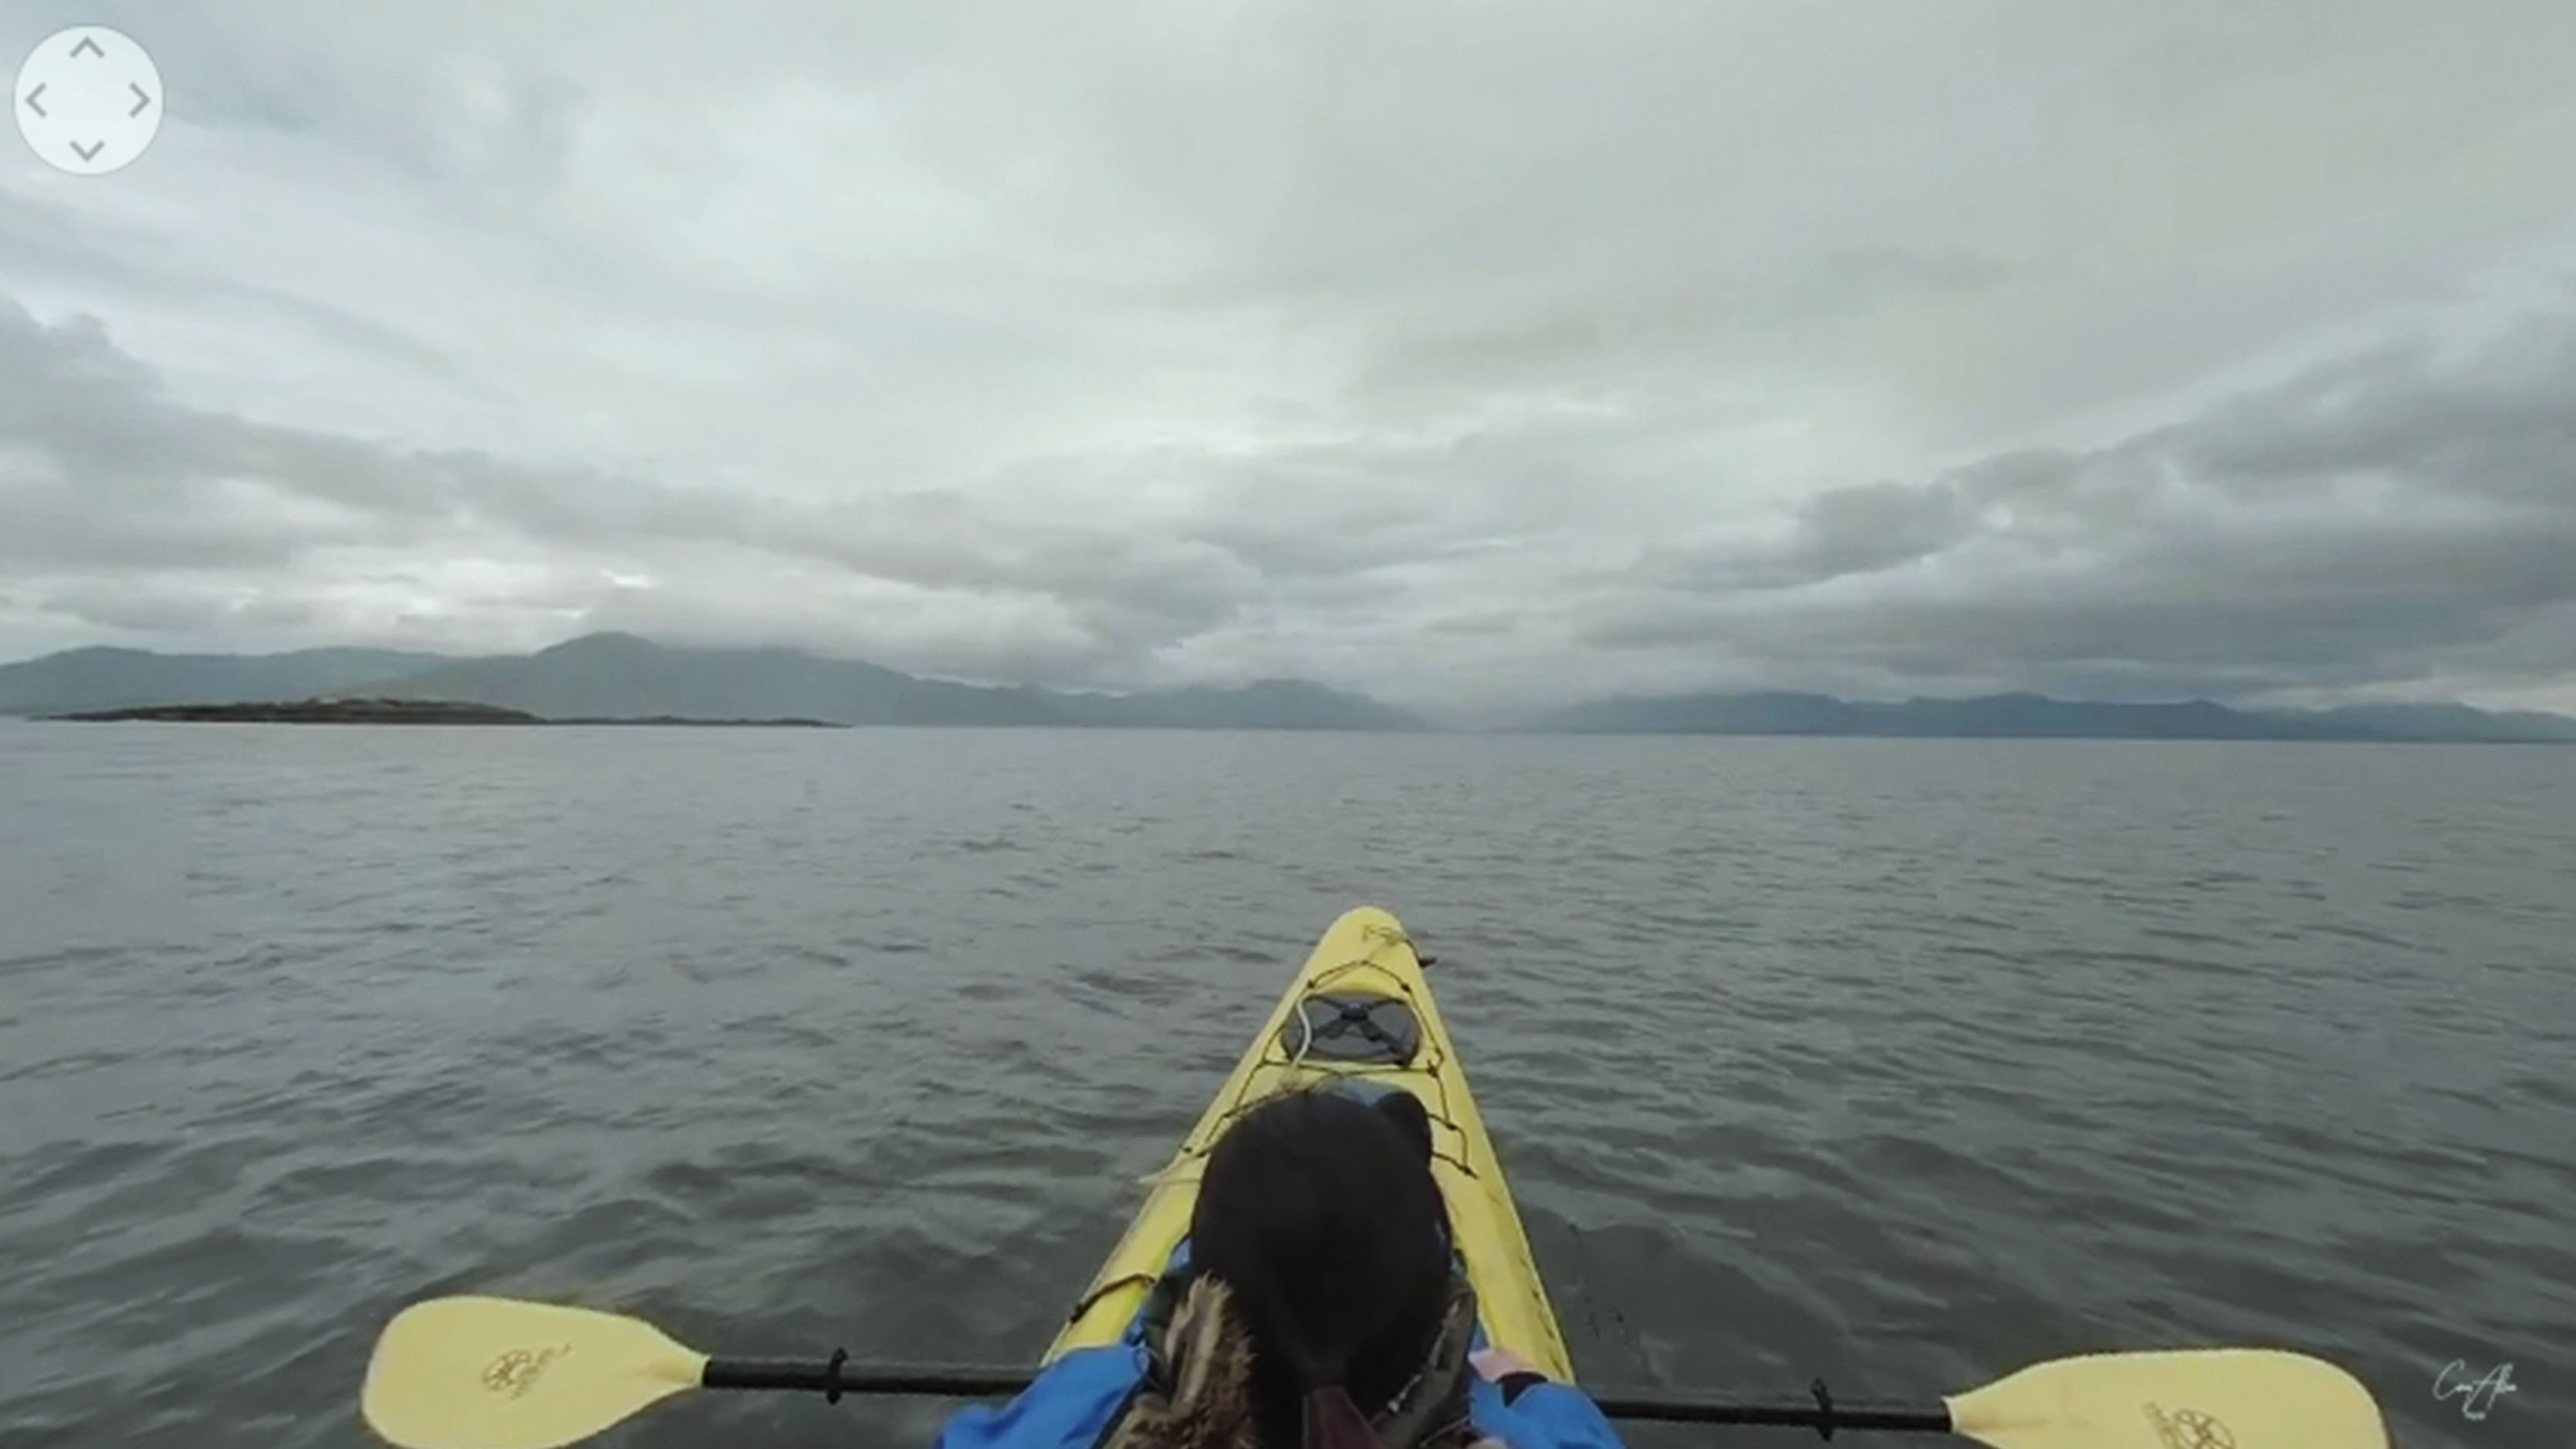 Our Alaskan Vacation Captured in 360 Video